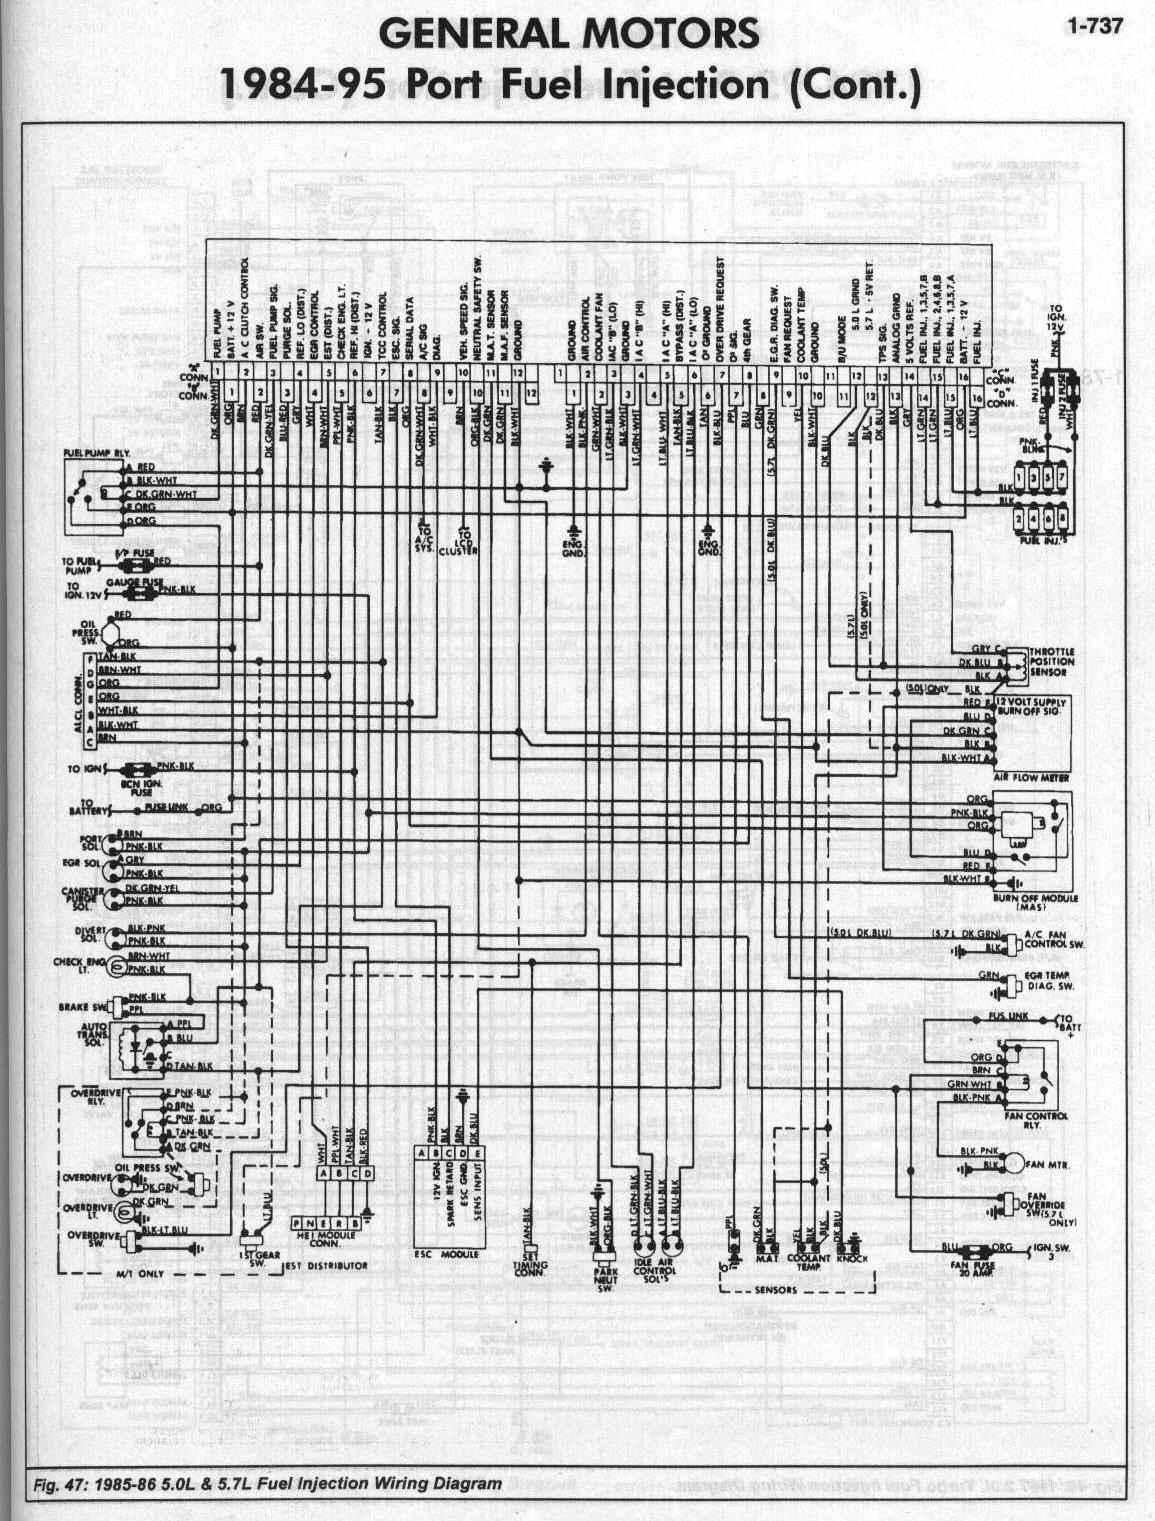 85 Camaro Engine Compartment Wiring Diagram Complete Diagrams 67 Schematic Wire Enthusiast U2022 Rh Rasalibre Co 68